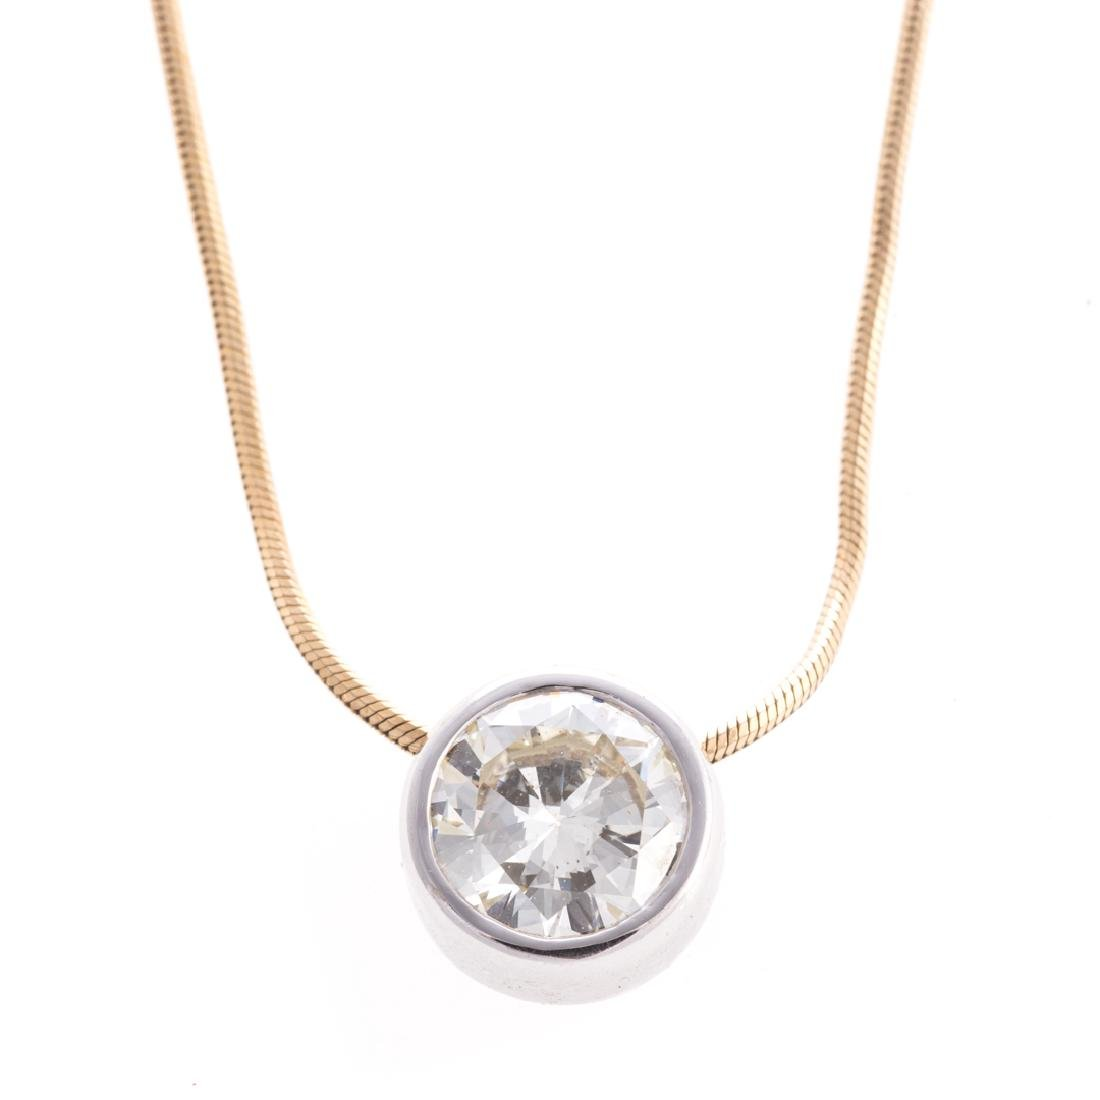 A Lady's 2.20 ct. Diamond Pendant in 14K Gold